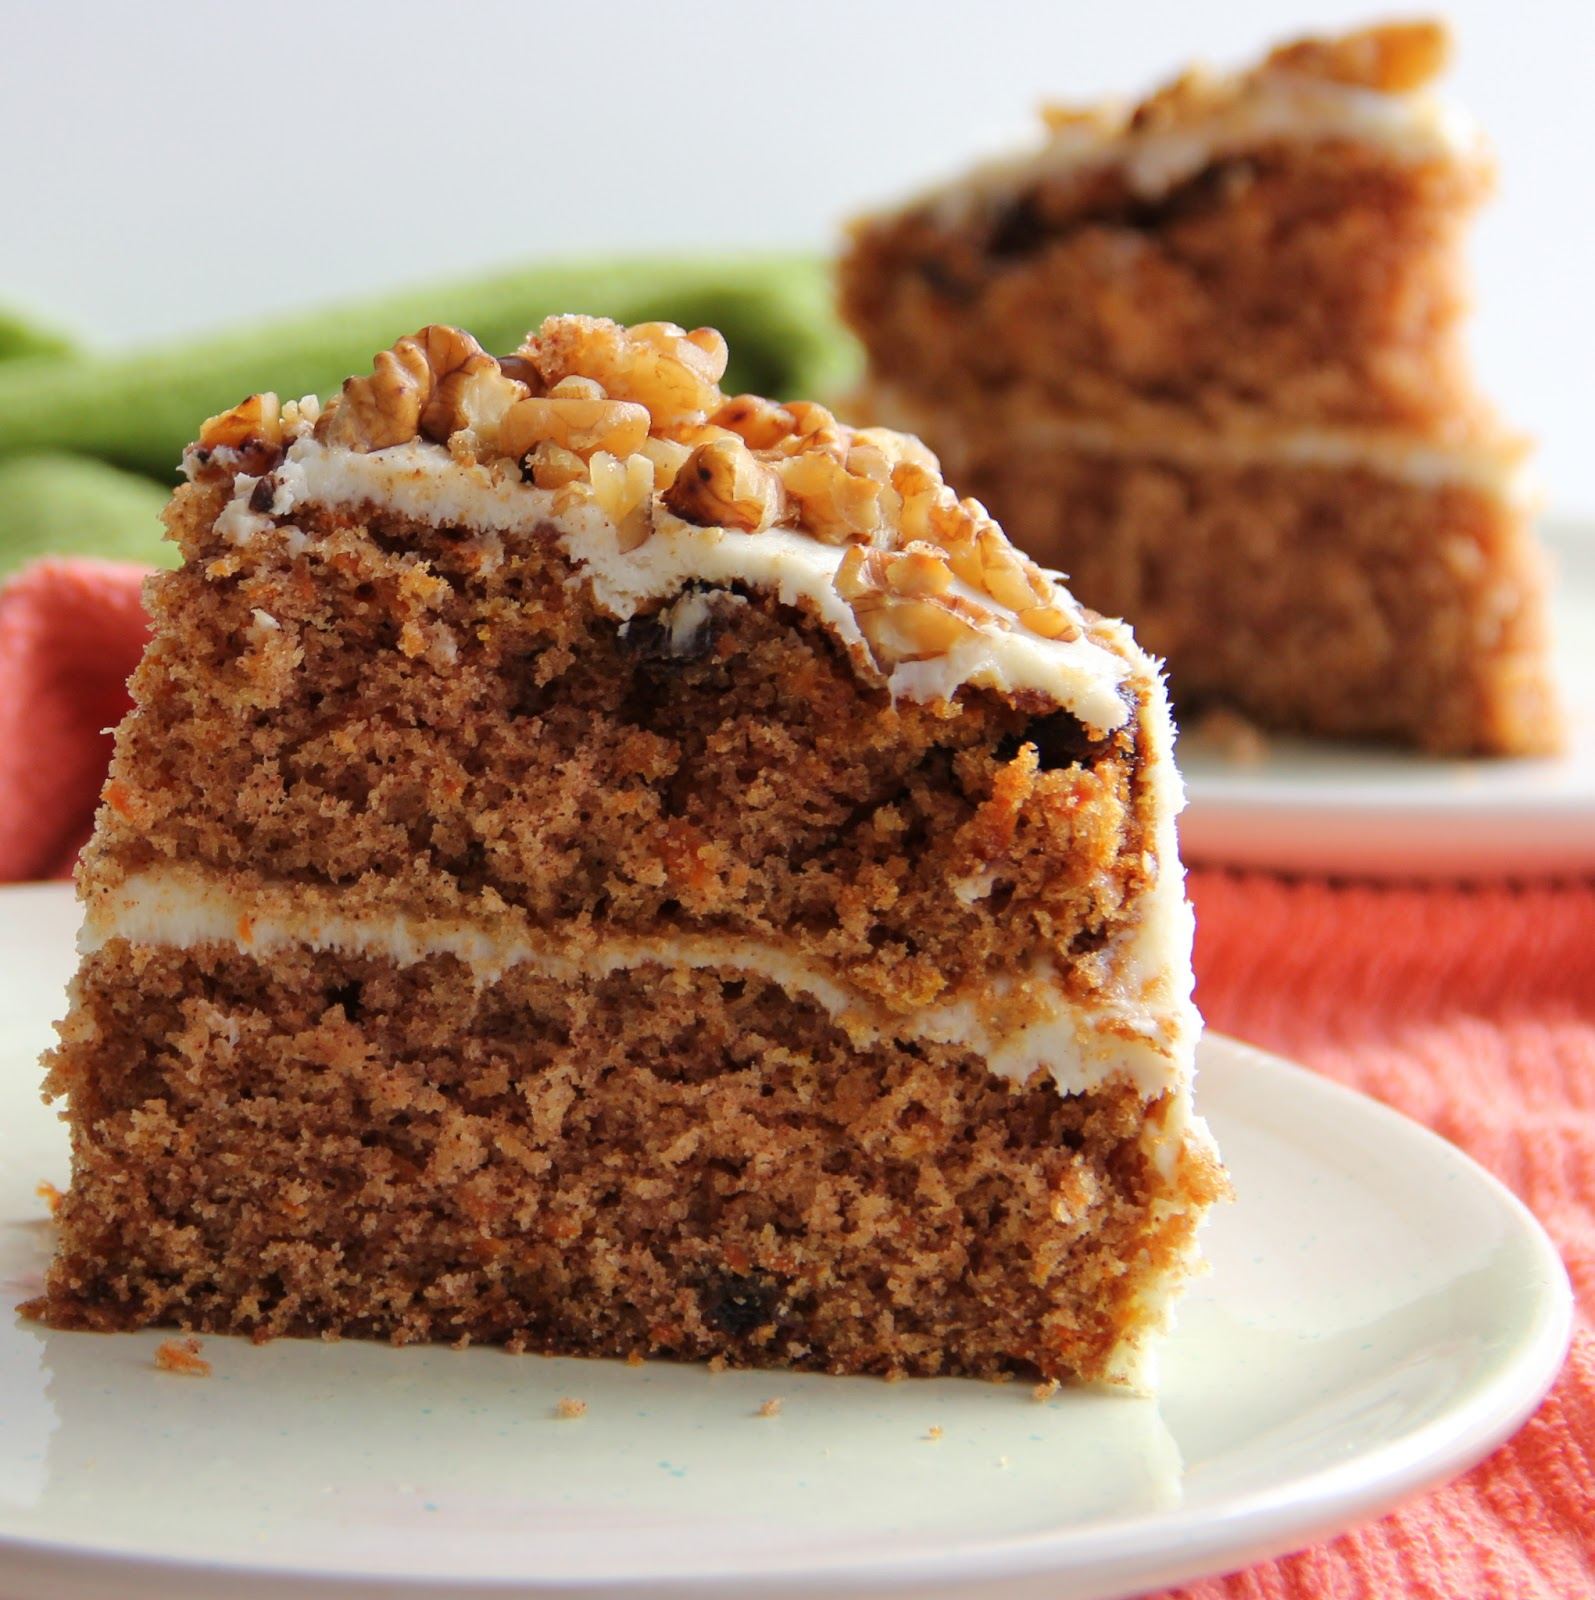 The Growing Foodie: Sassy Sweets: Carrot Cake with Cream ...